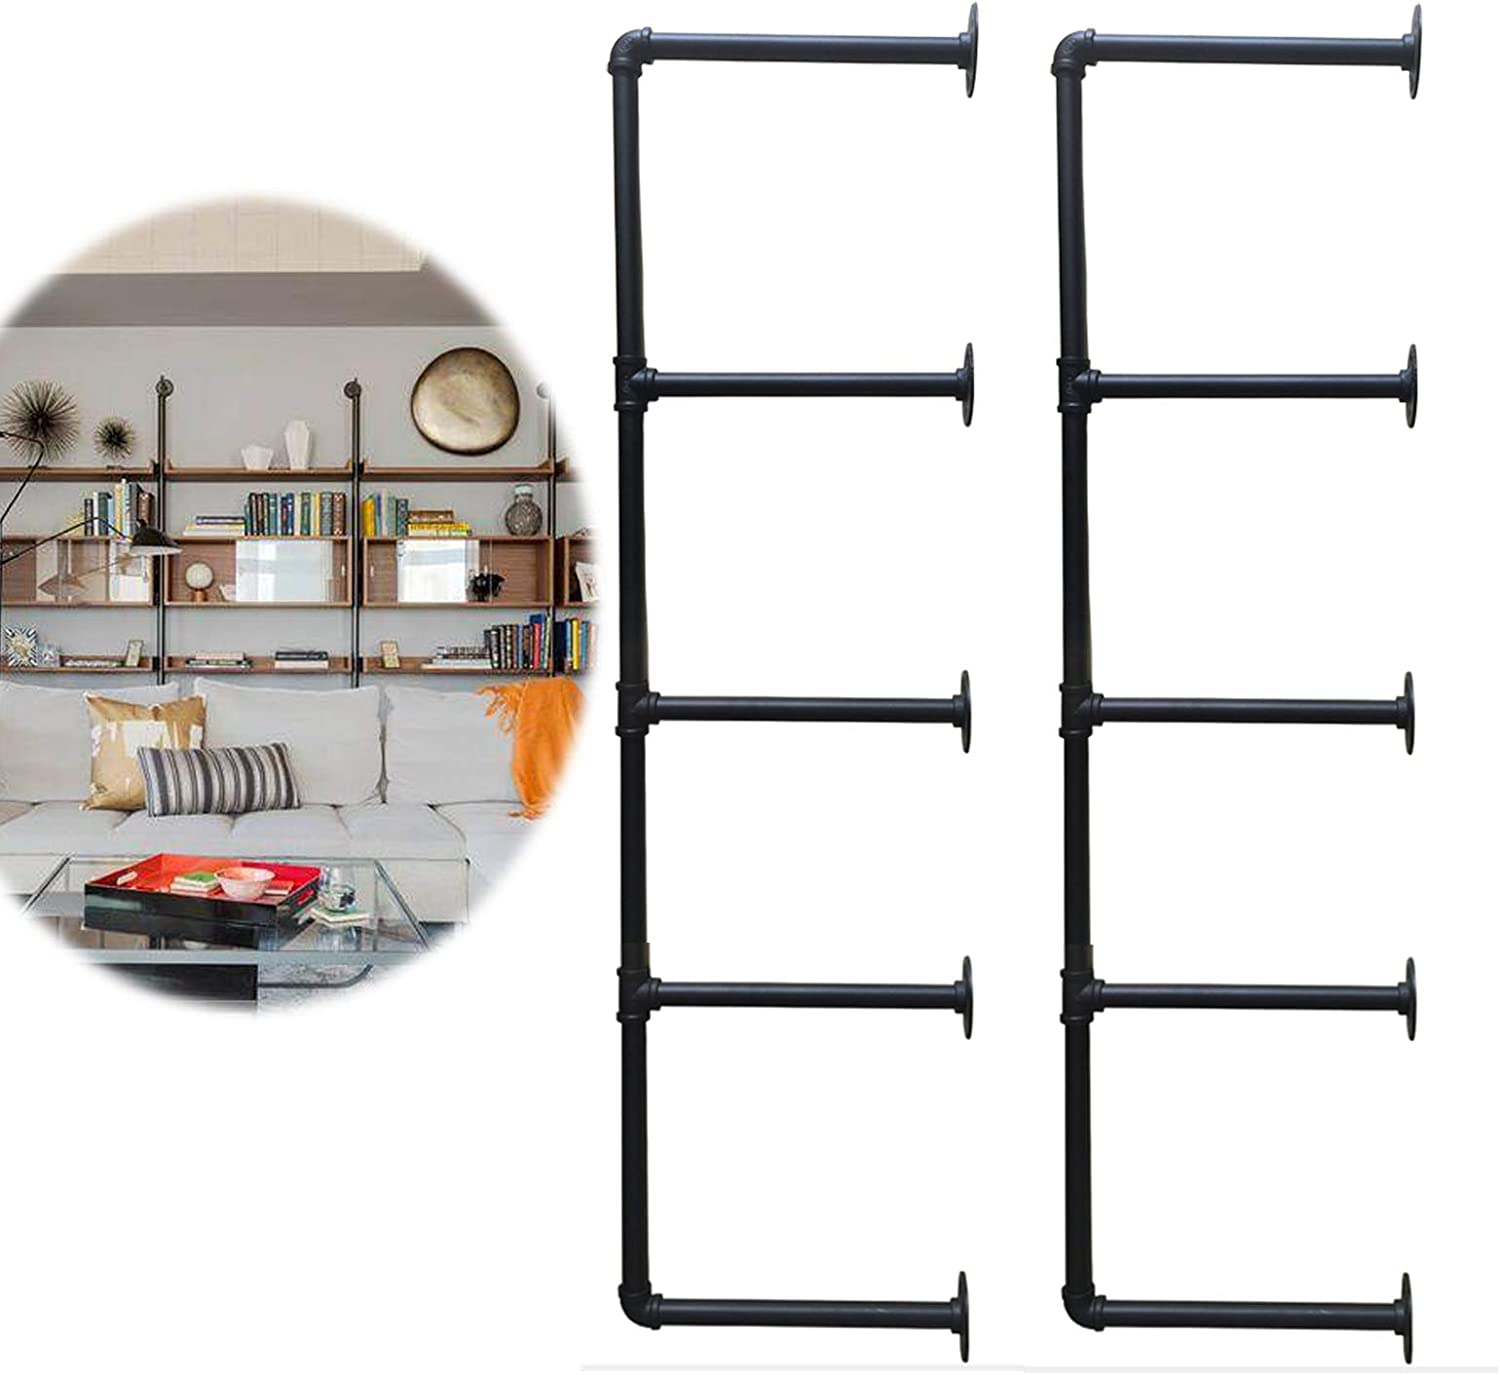 Heroecol 2Pc 56 Tall 12 Board Wide Industrial Iron Pipe Shelf Shelves Bookshelf Bookcase Shelving Bracket Vintage Retro Black Open DIY Storage Home Office Kitchen 2Pcs 5Tier Hardware only